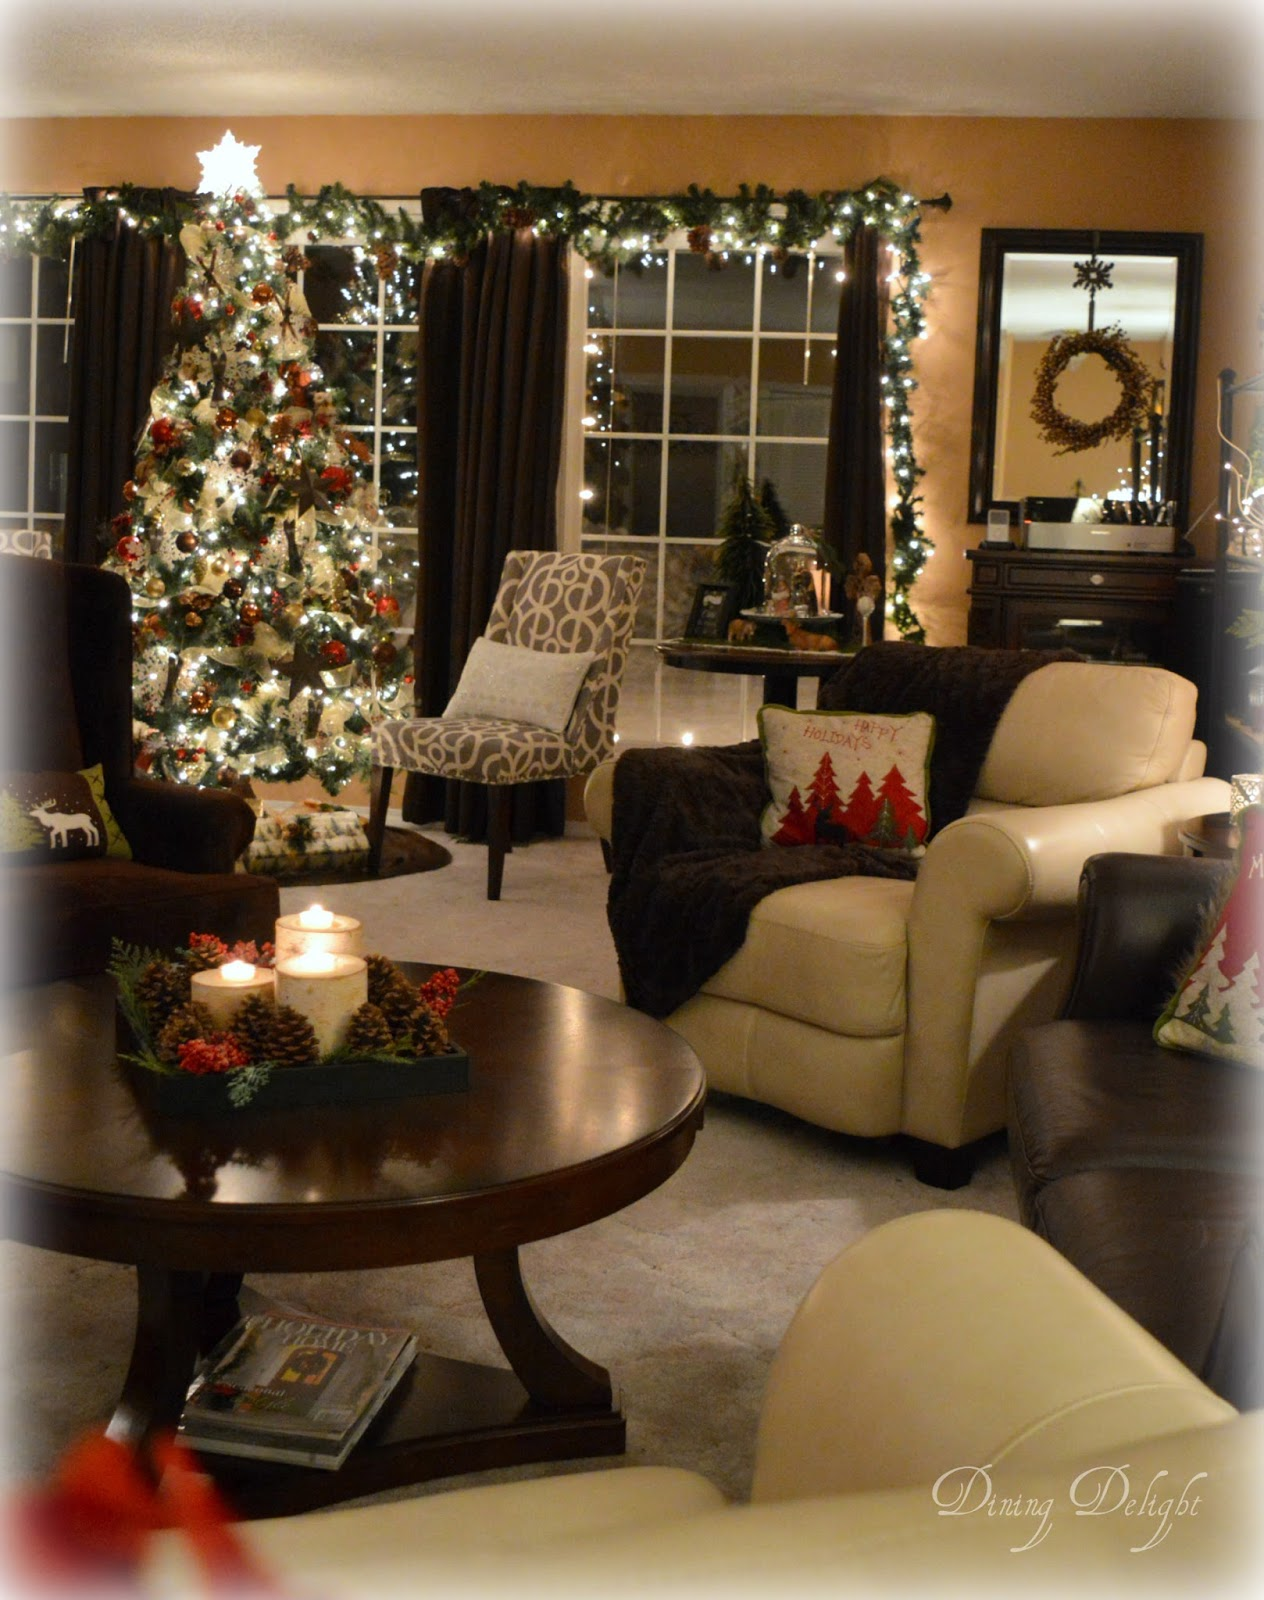 Dining Delight: Holiday Home Tour - Christmas in a Cozy House